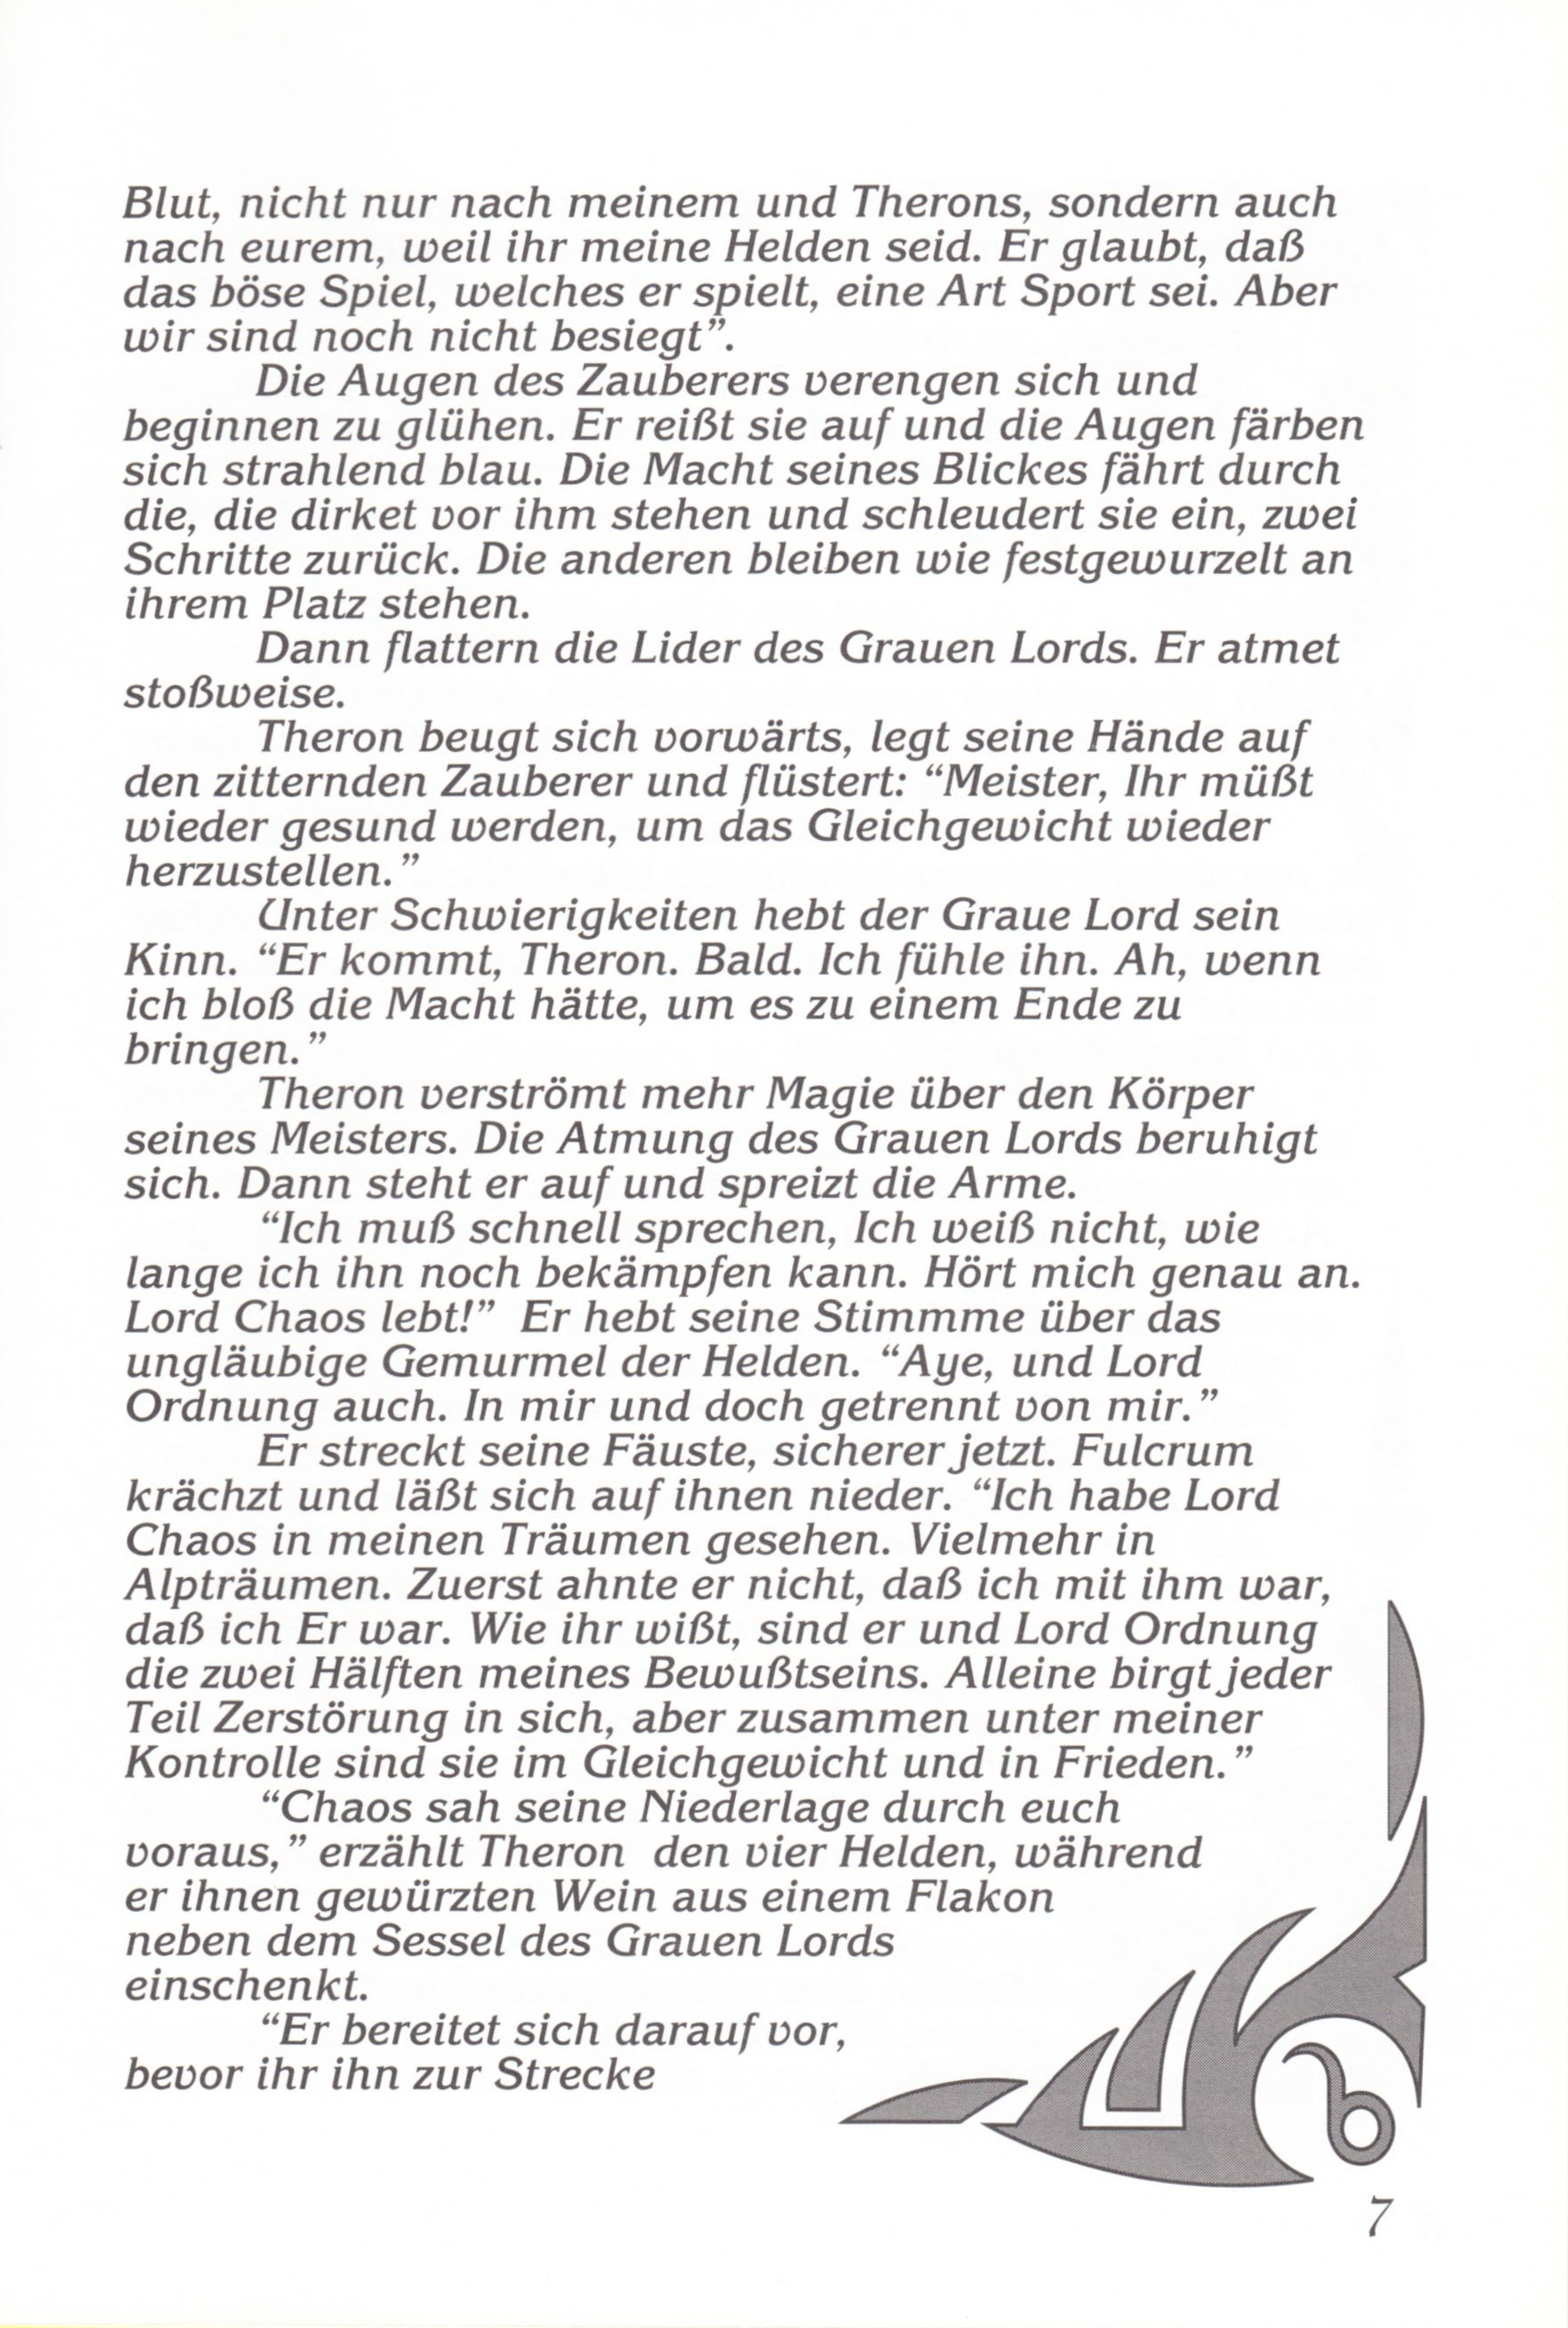 Game - Chaos Strikes Back - DE - Amiga - Manual - Page 009 - Scan